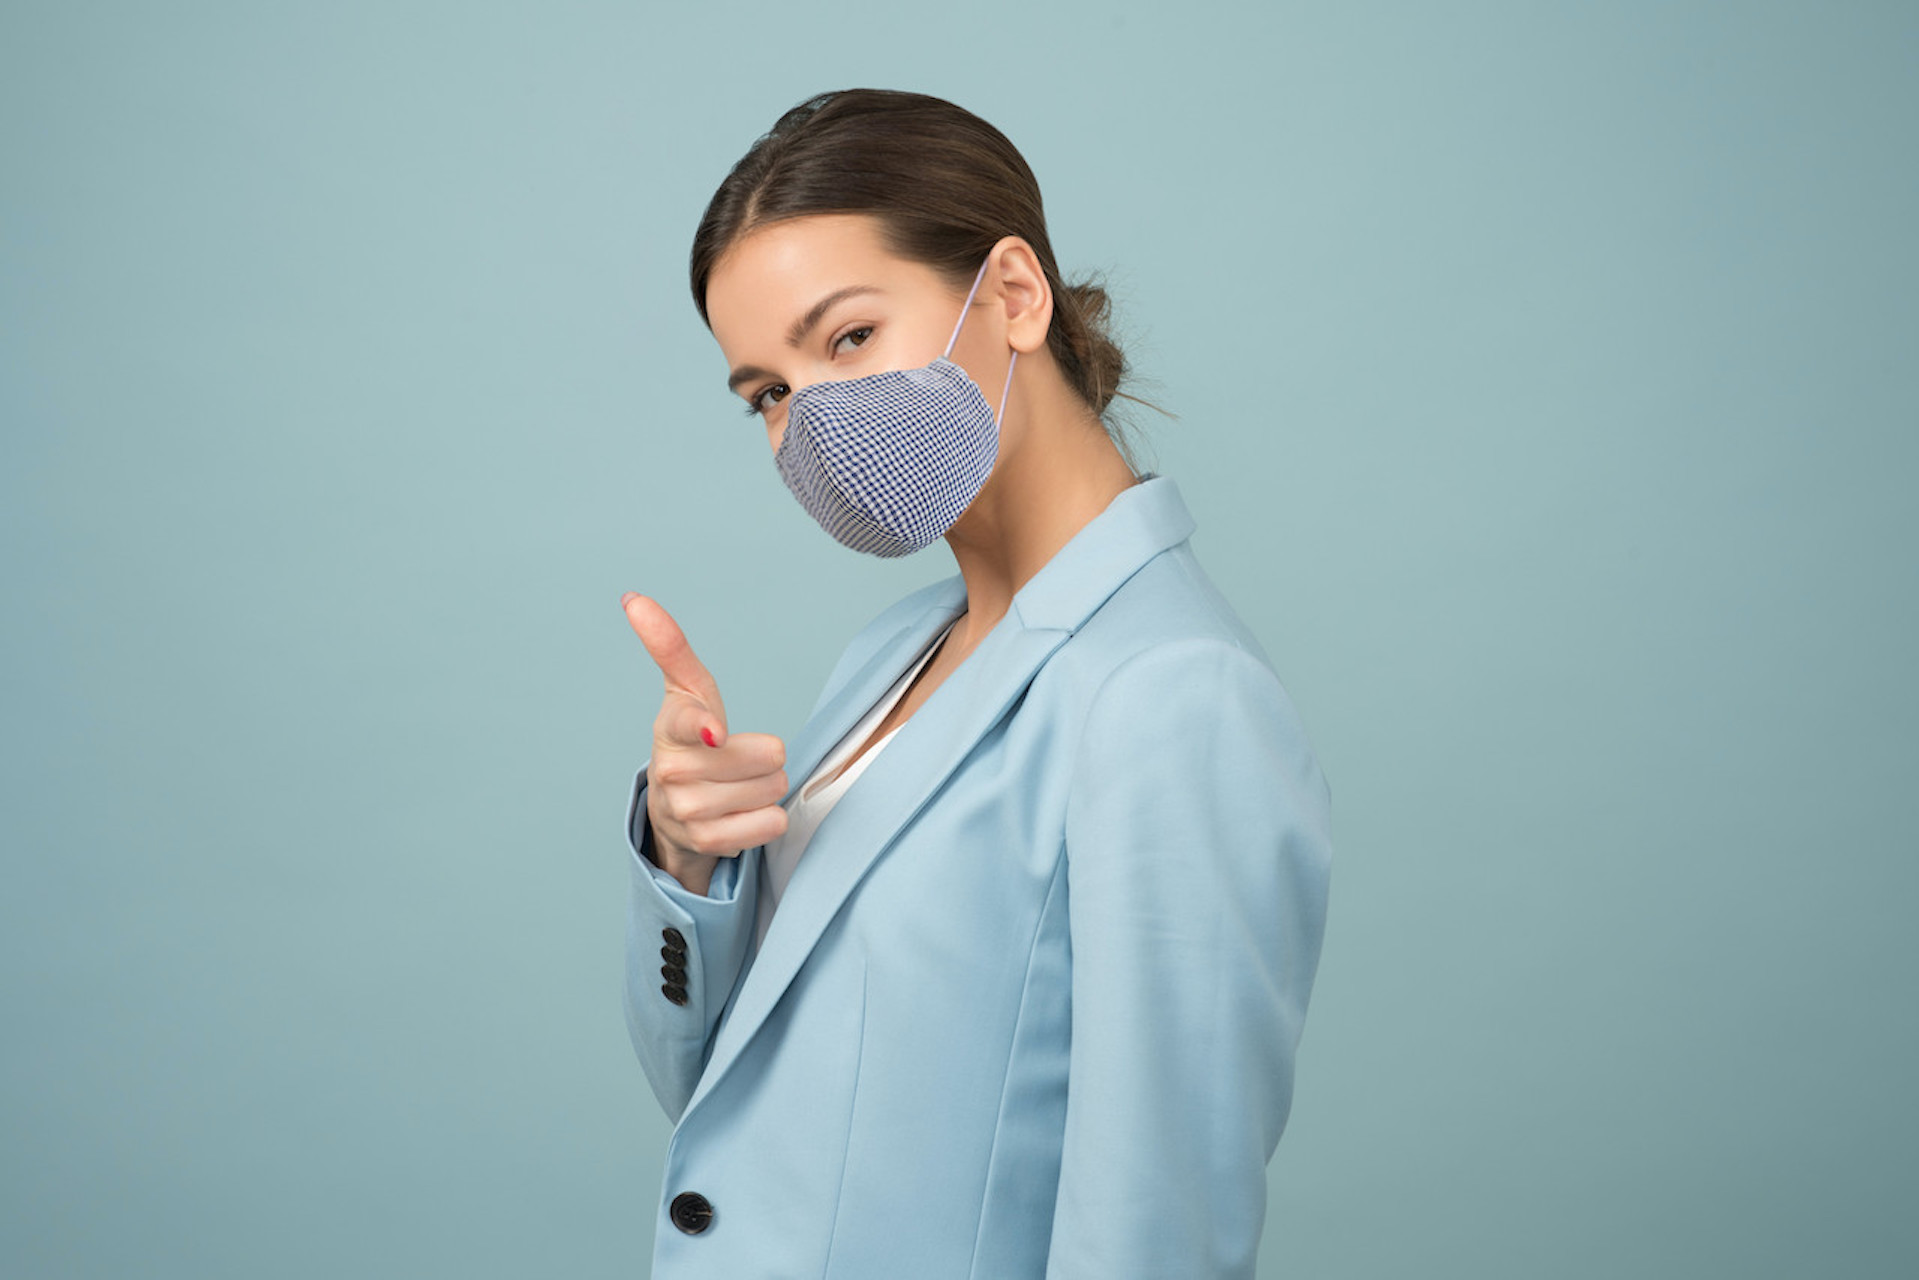 woman-in-Mask-suit-jacket-1036622_1